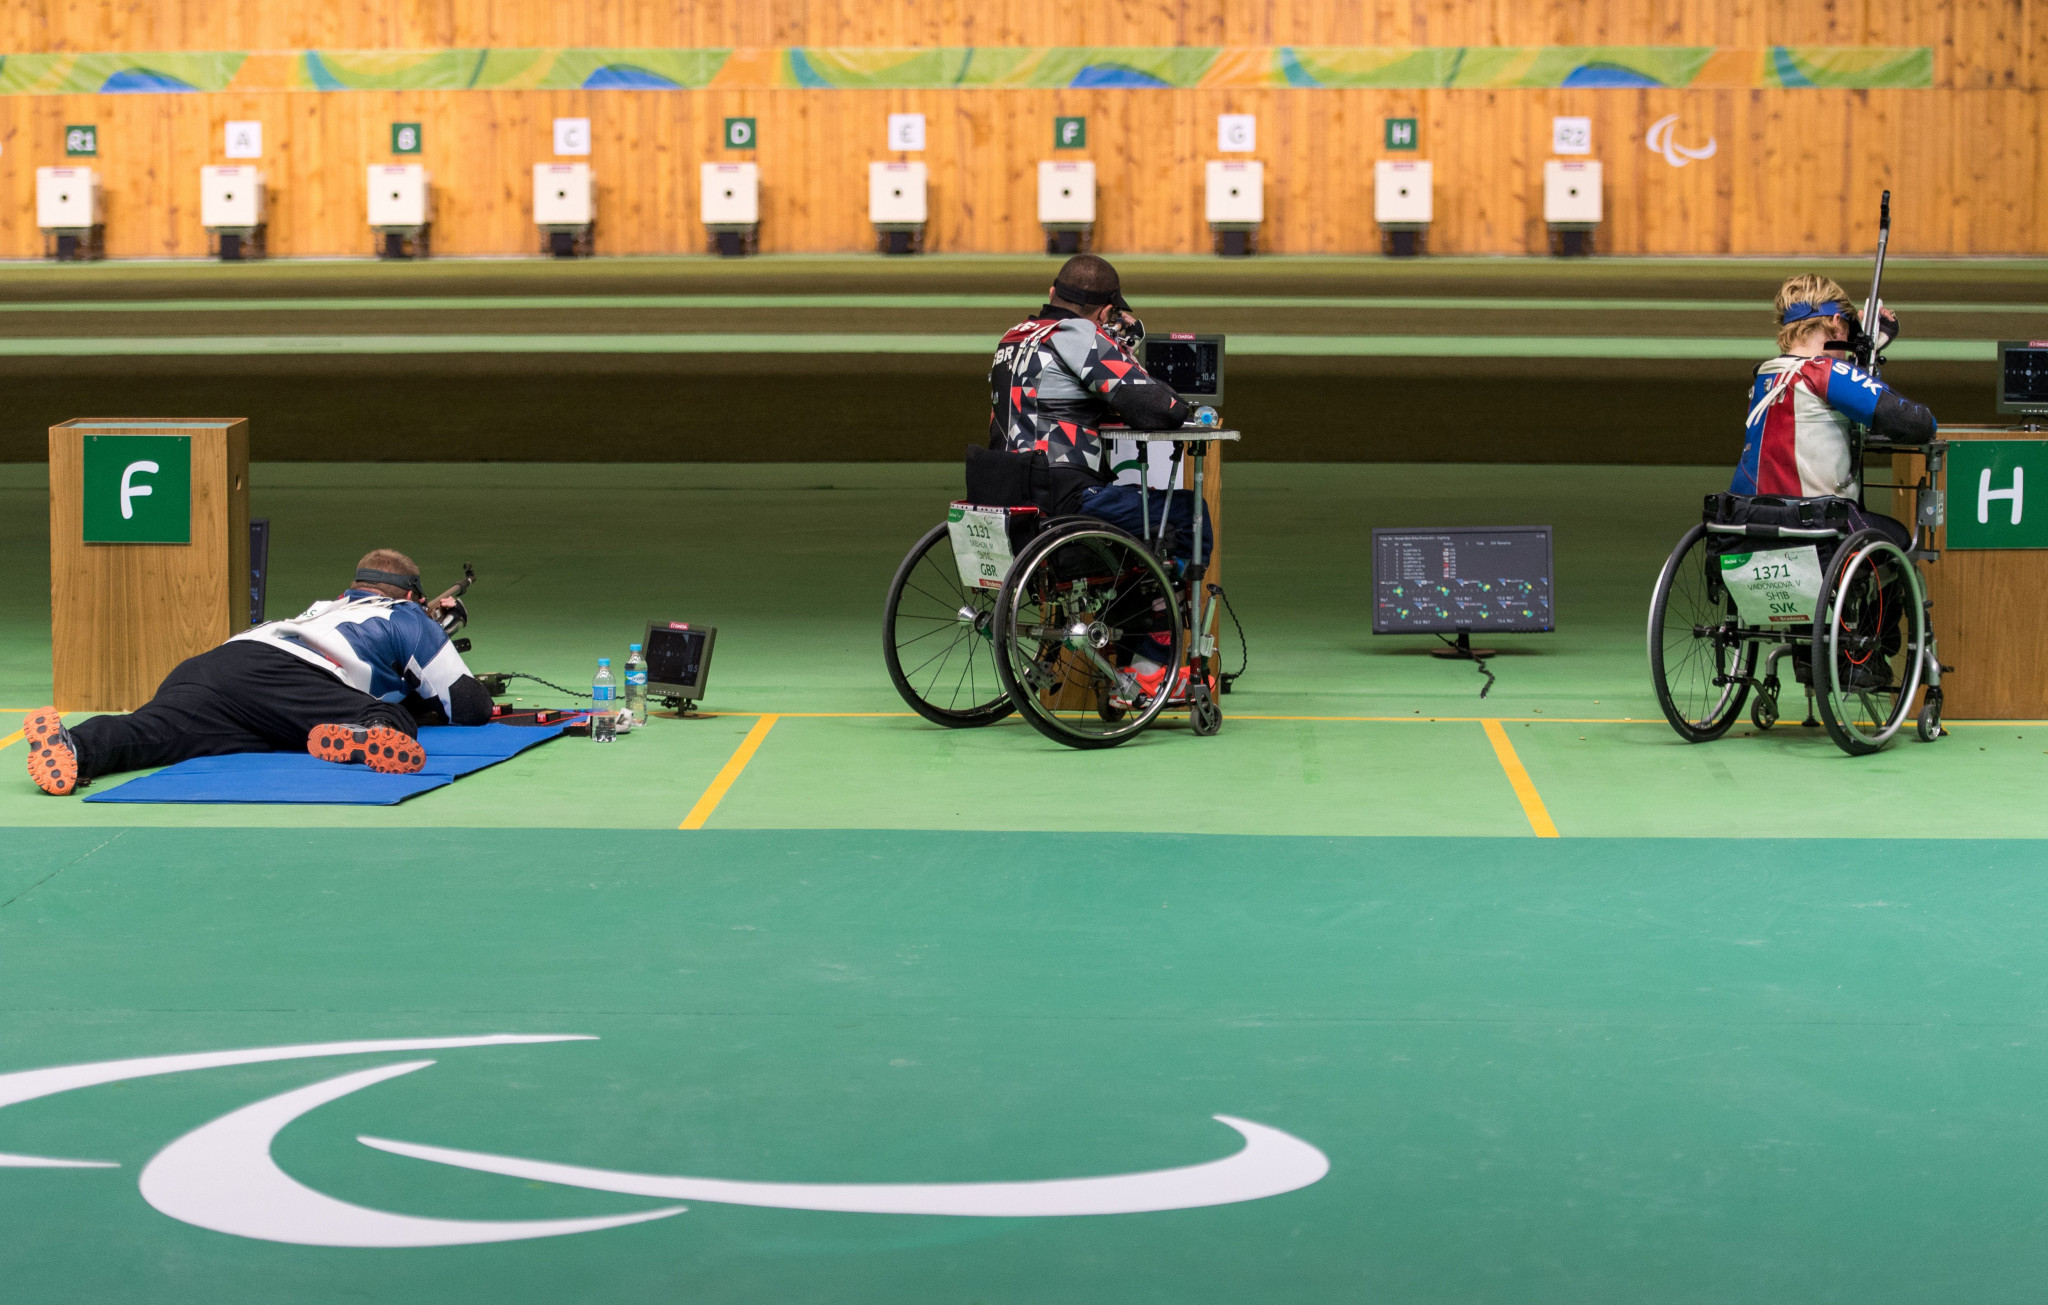 Will Anti will oversee the US Para shooting team at events including the 2020 Paralympic Games in Tokyo ©Getty Images